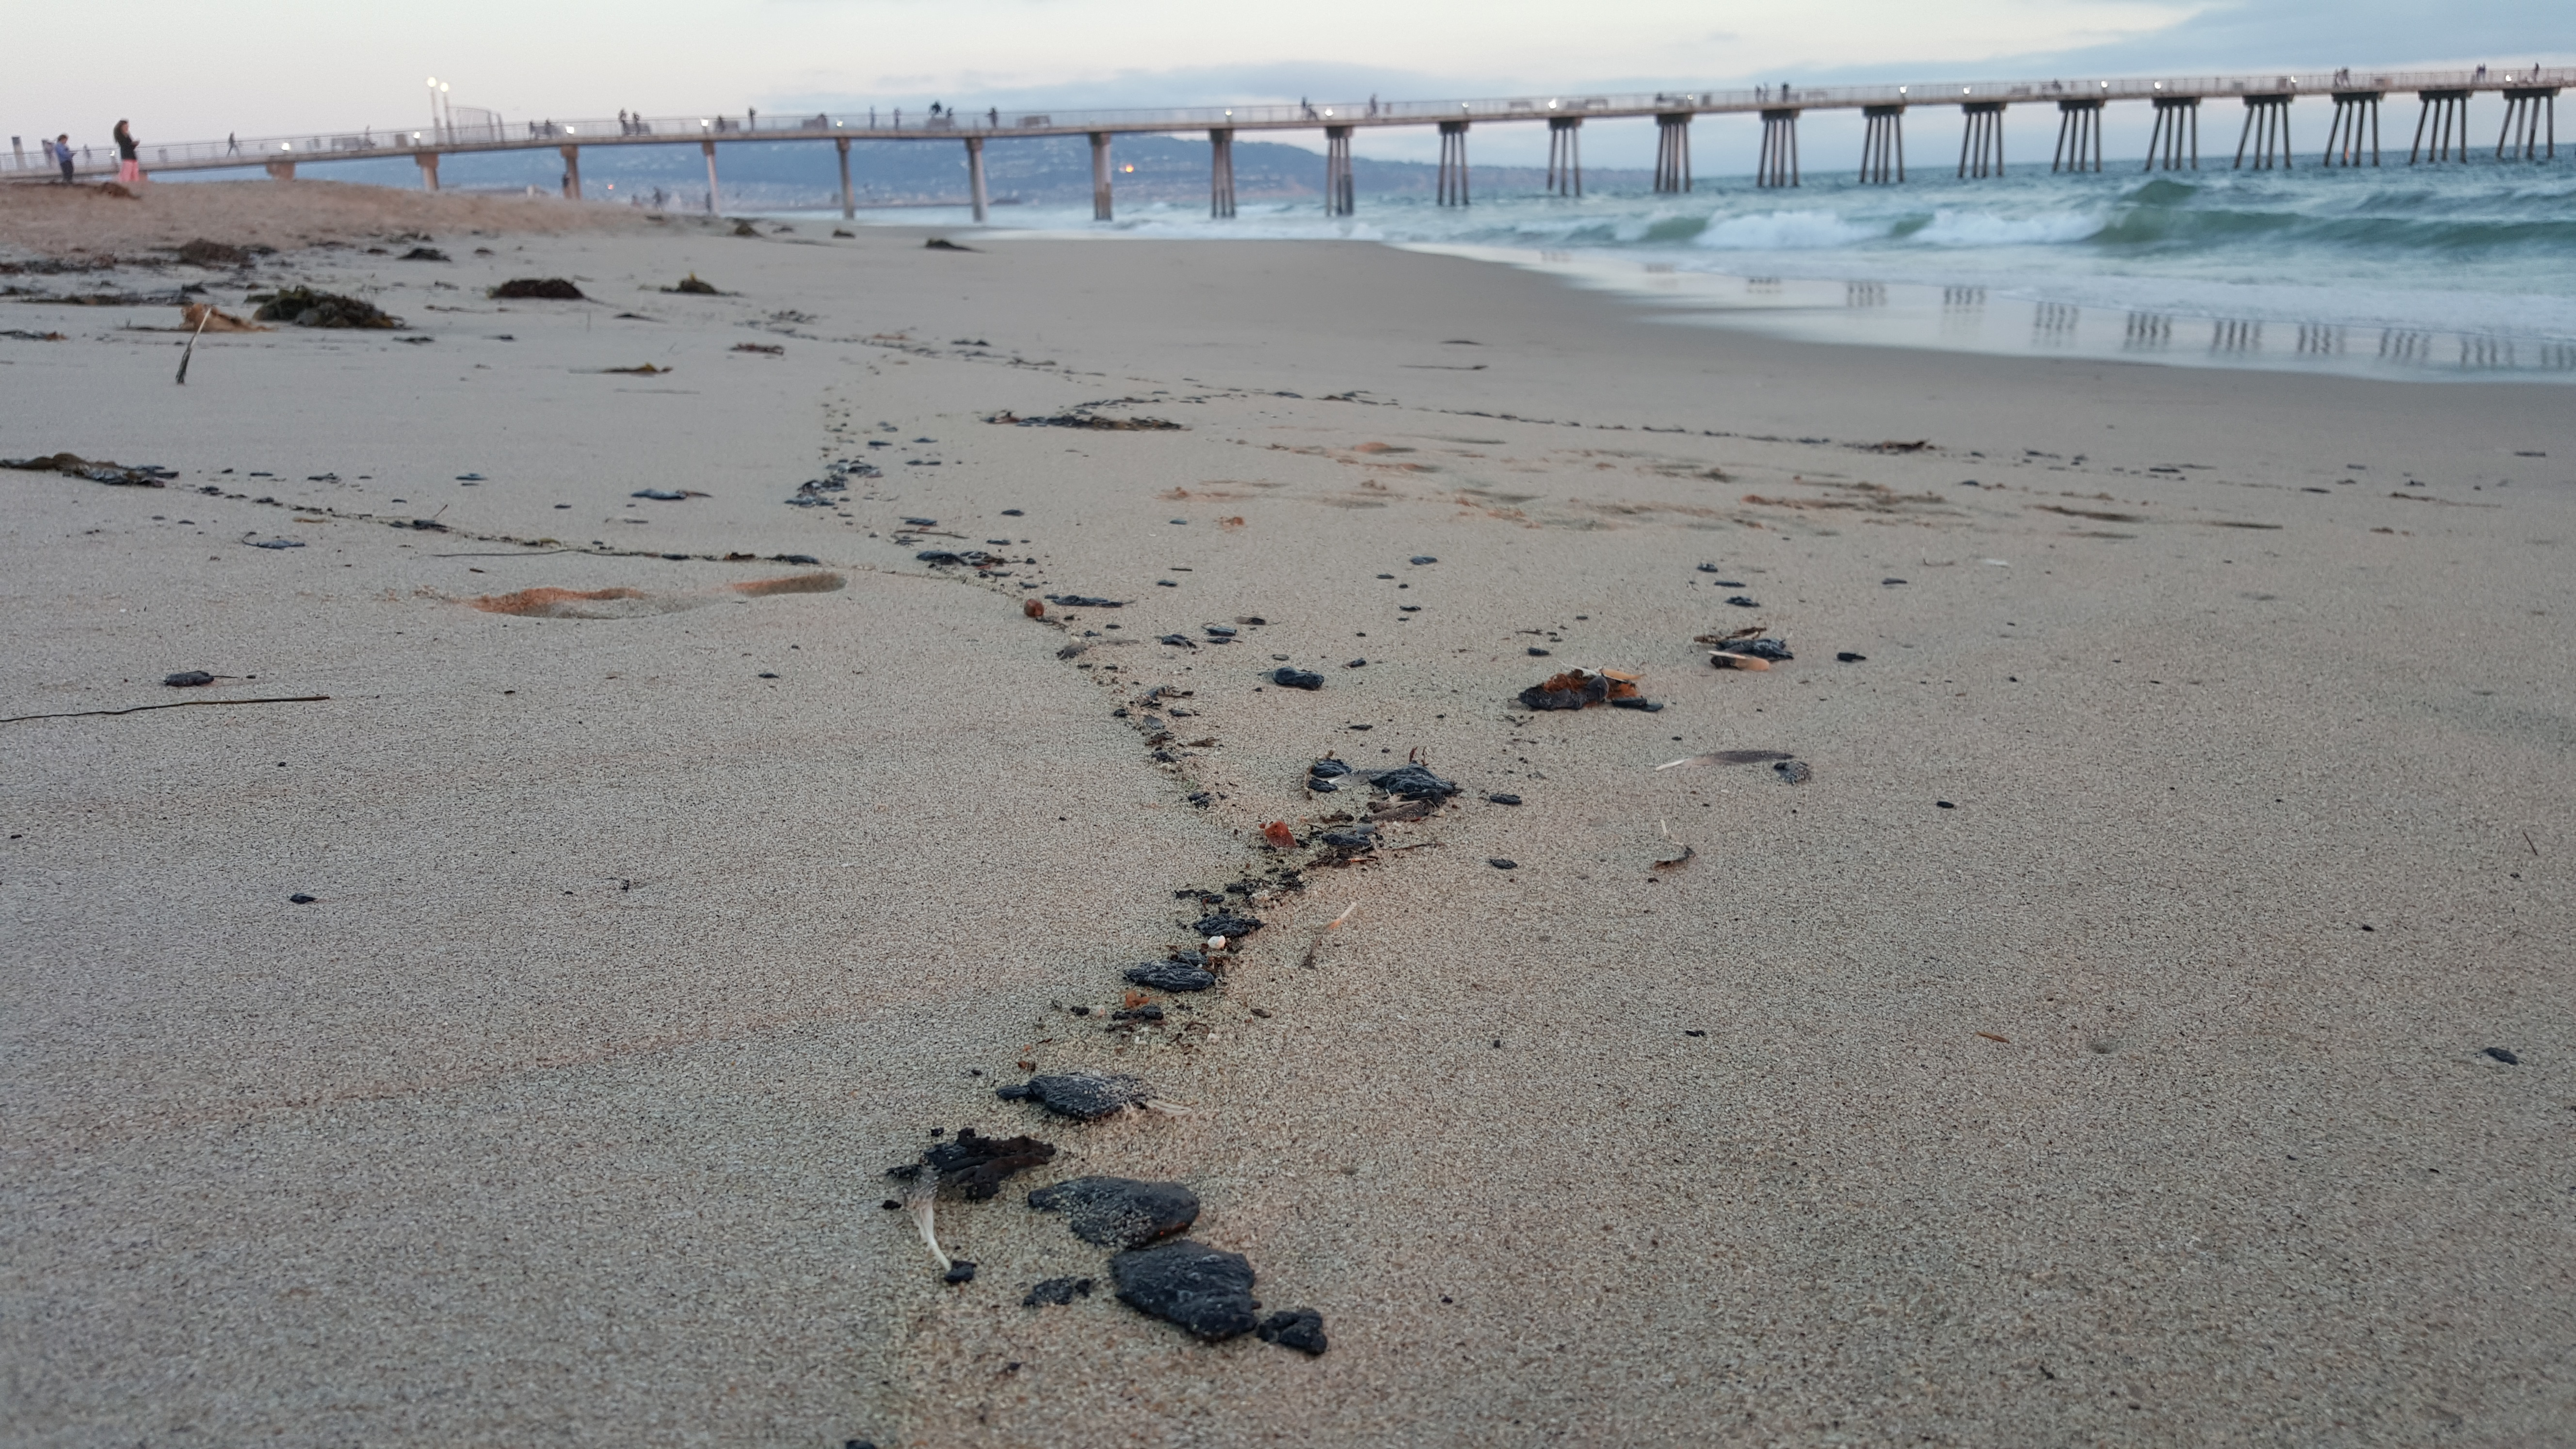 Substance washing up on shore identified as oil